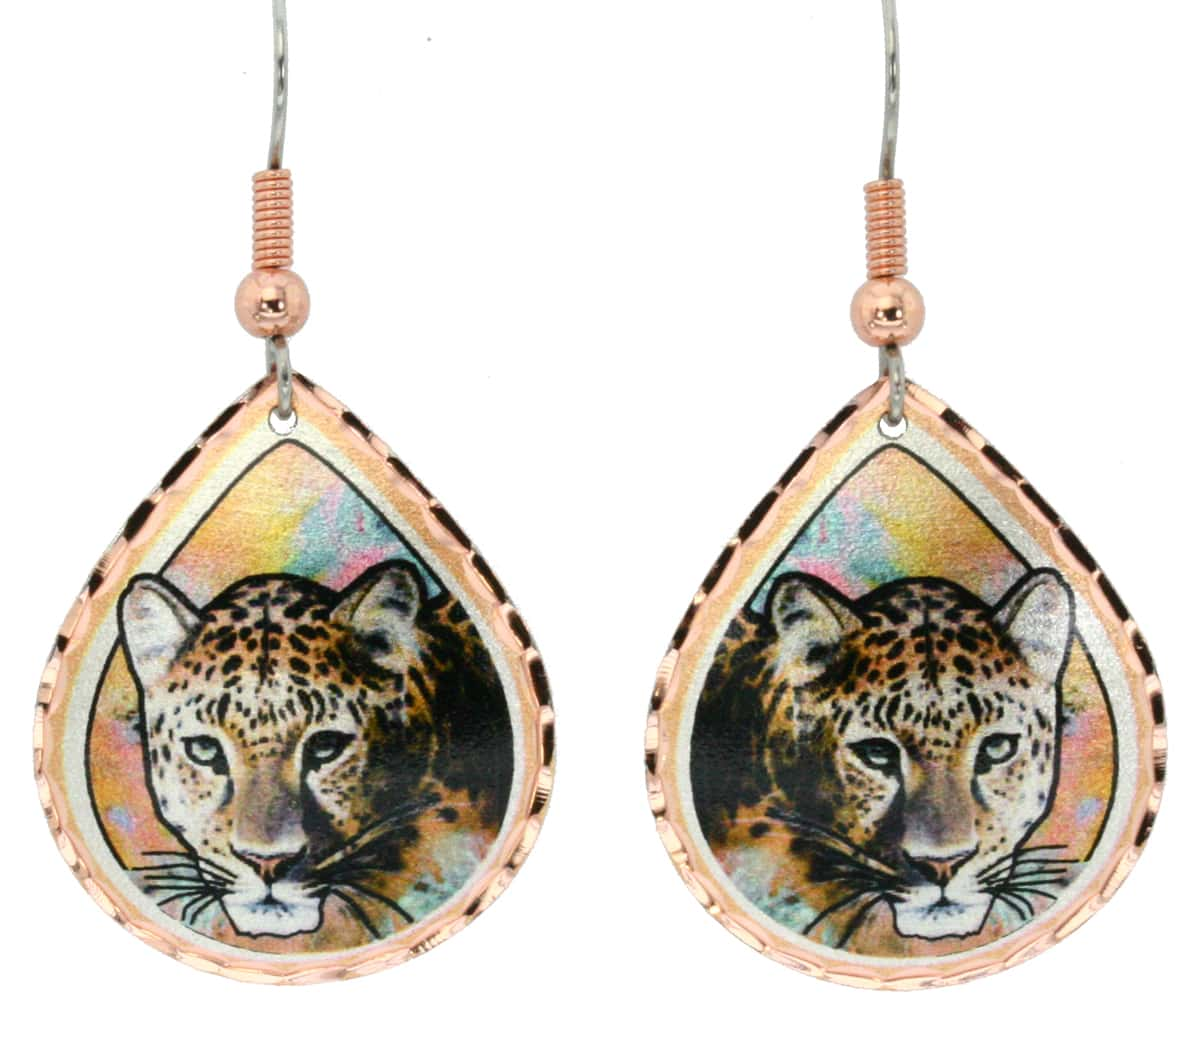 Wear leopard earrings created in bright colors to make you smile